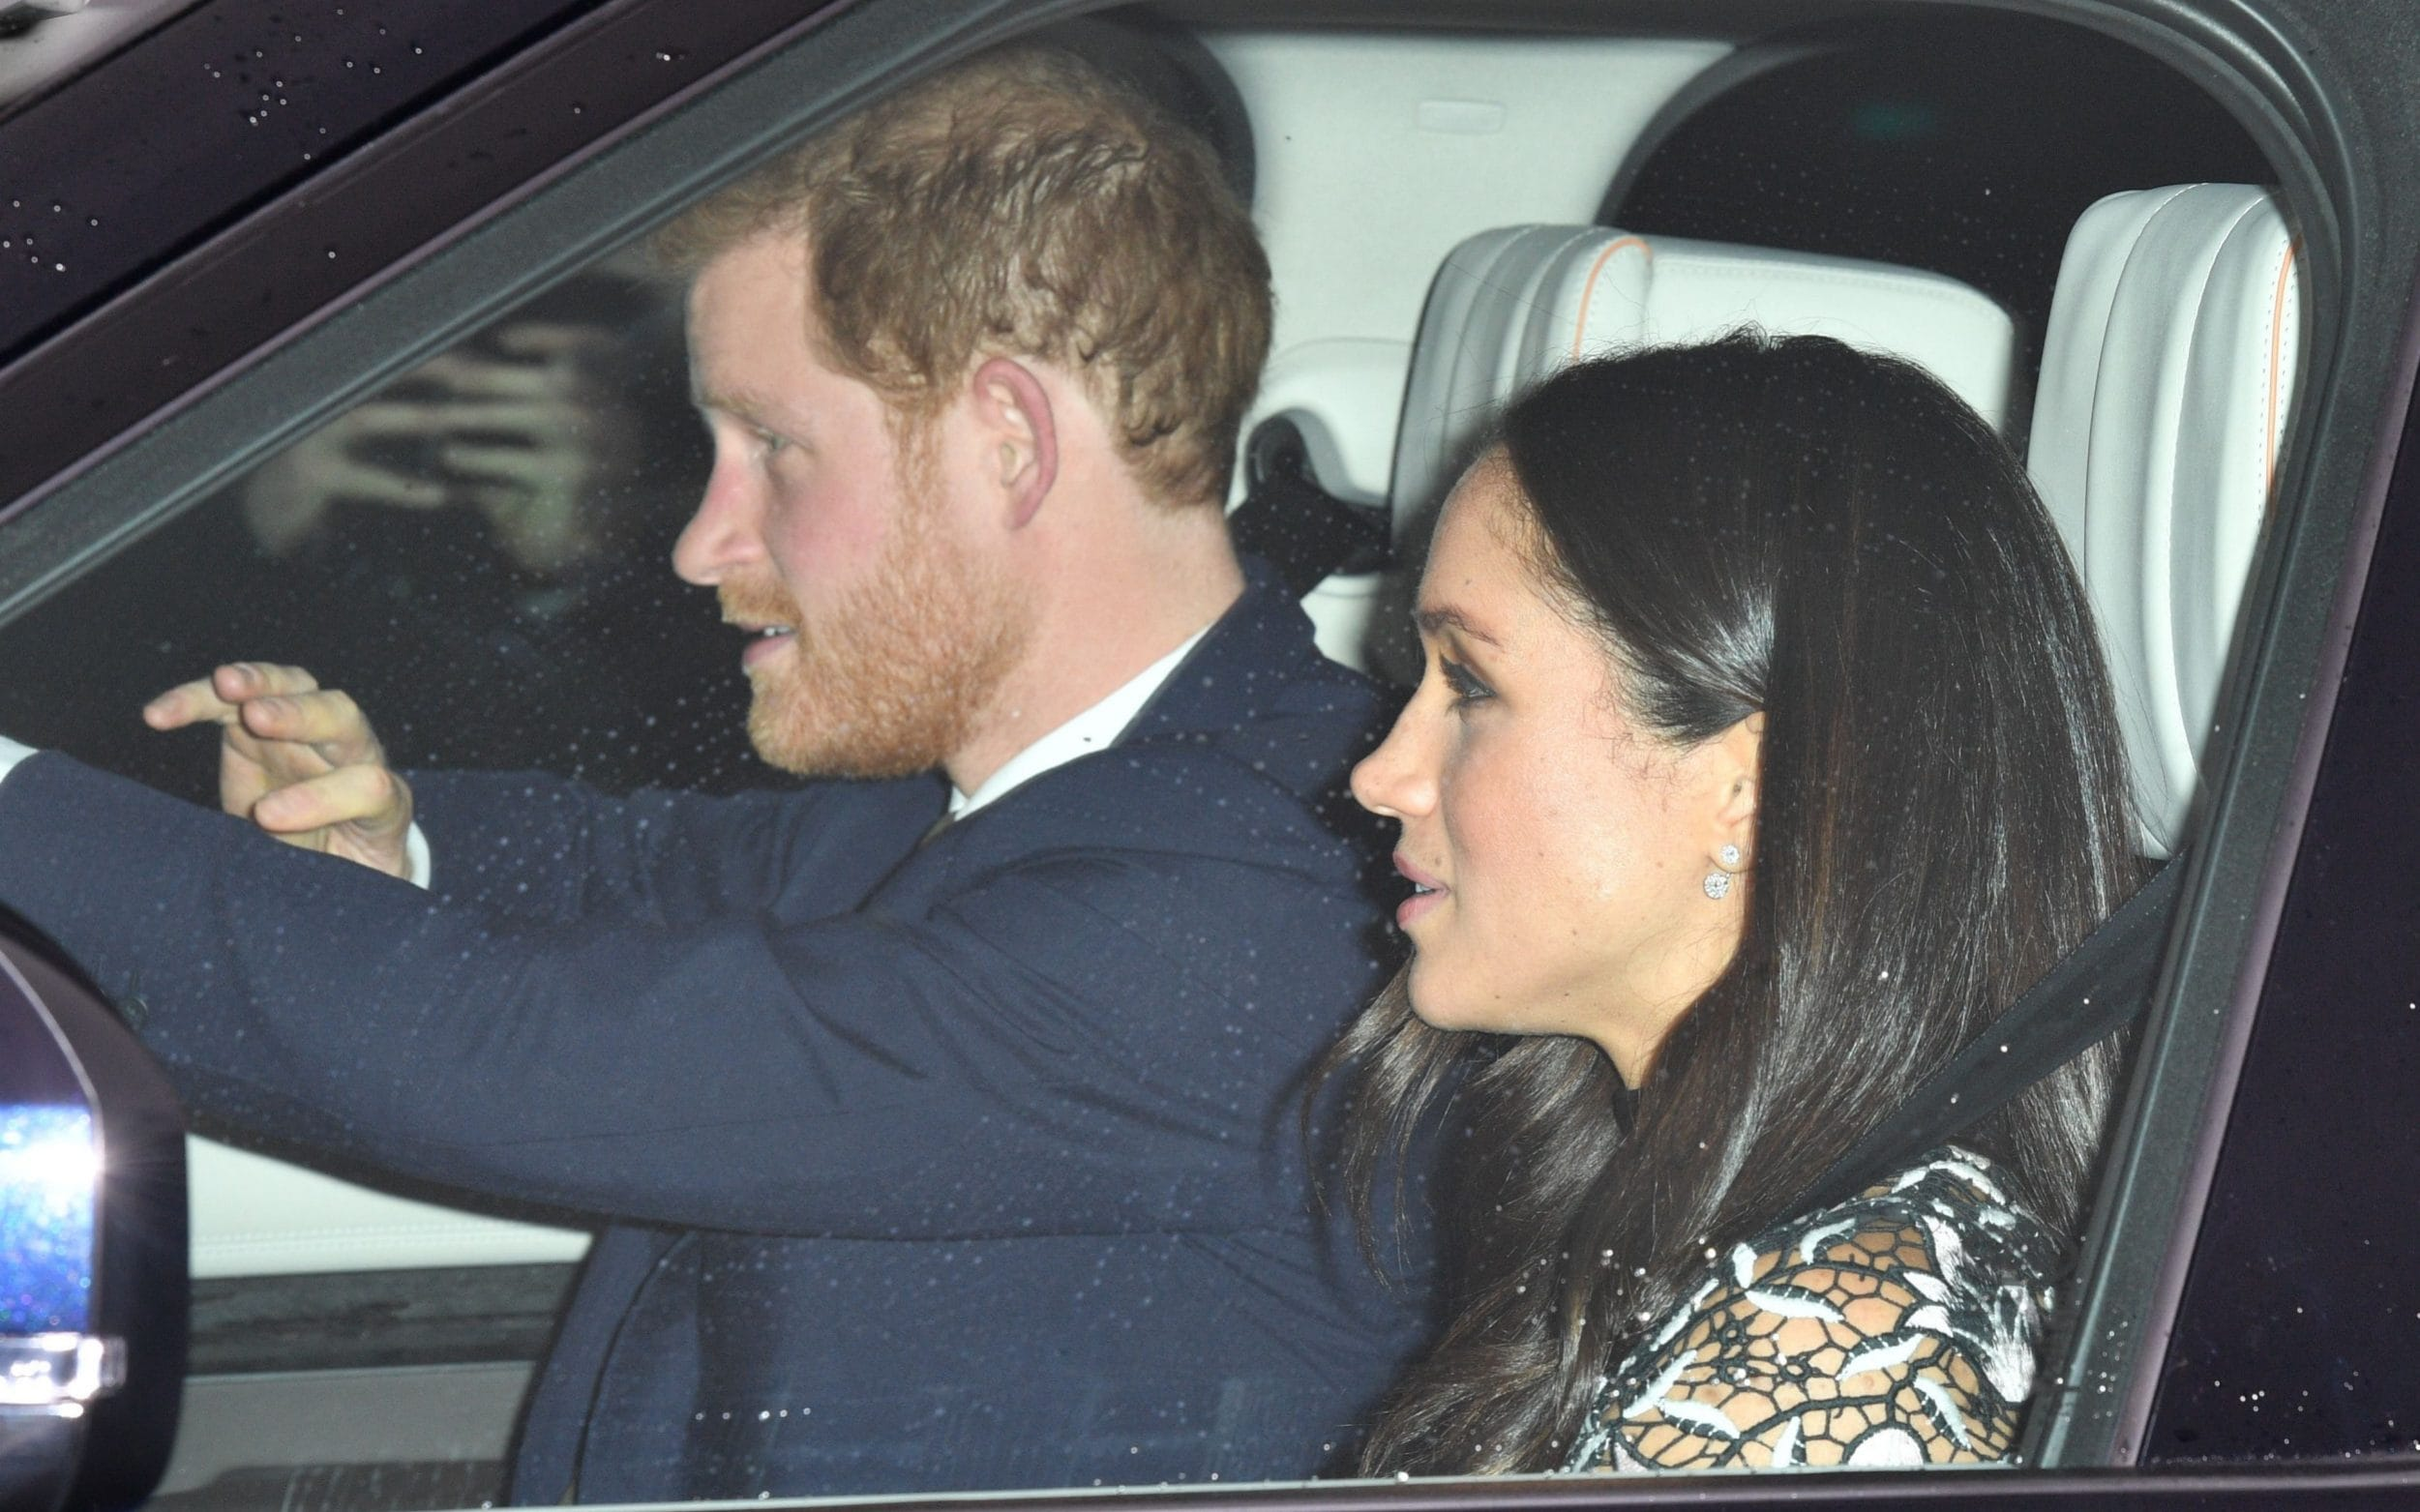 Meghan Markle was driven into Buckingham Palace by Prince Harry